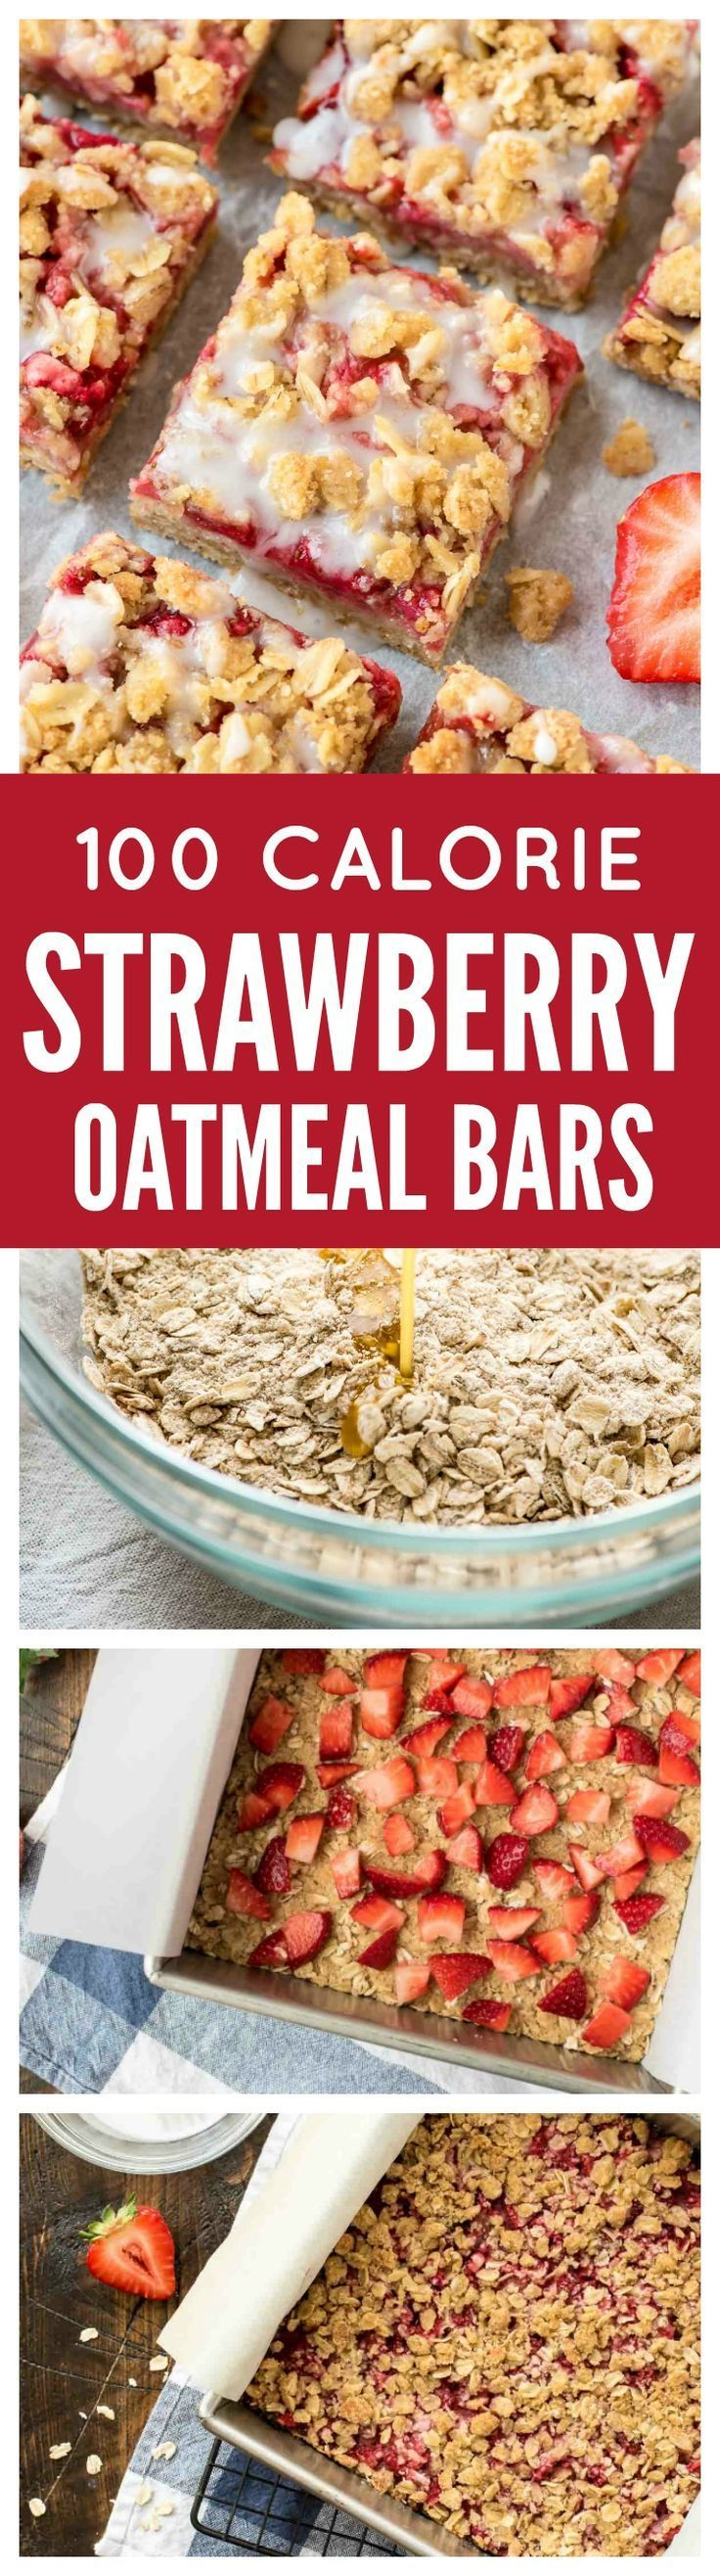 These buttery Strawberry Oatmeal Bars are only 100 CALORIES EACH!! With a buttery crust, sweet strawberry filling, and delicious crumb topping, they make wonderful dessert bars to take to a party or potluck but are healthy enough for a snack. So easy even kids can make them! /wellplated/ www.wellplated.com/ http://www.wellplated.com//strawberry-oatmeal-bars/?utm_content=bufferbaaec&utm_medium=social&utm_source=pinterest.com&utm_campaign=buffer